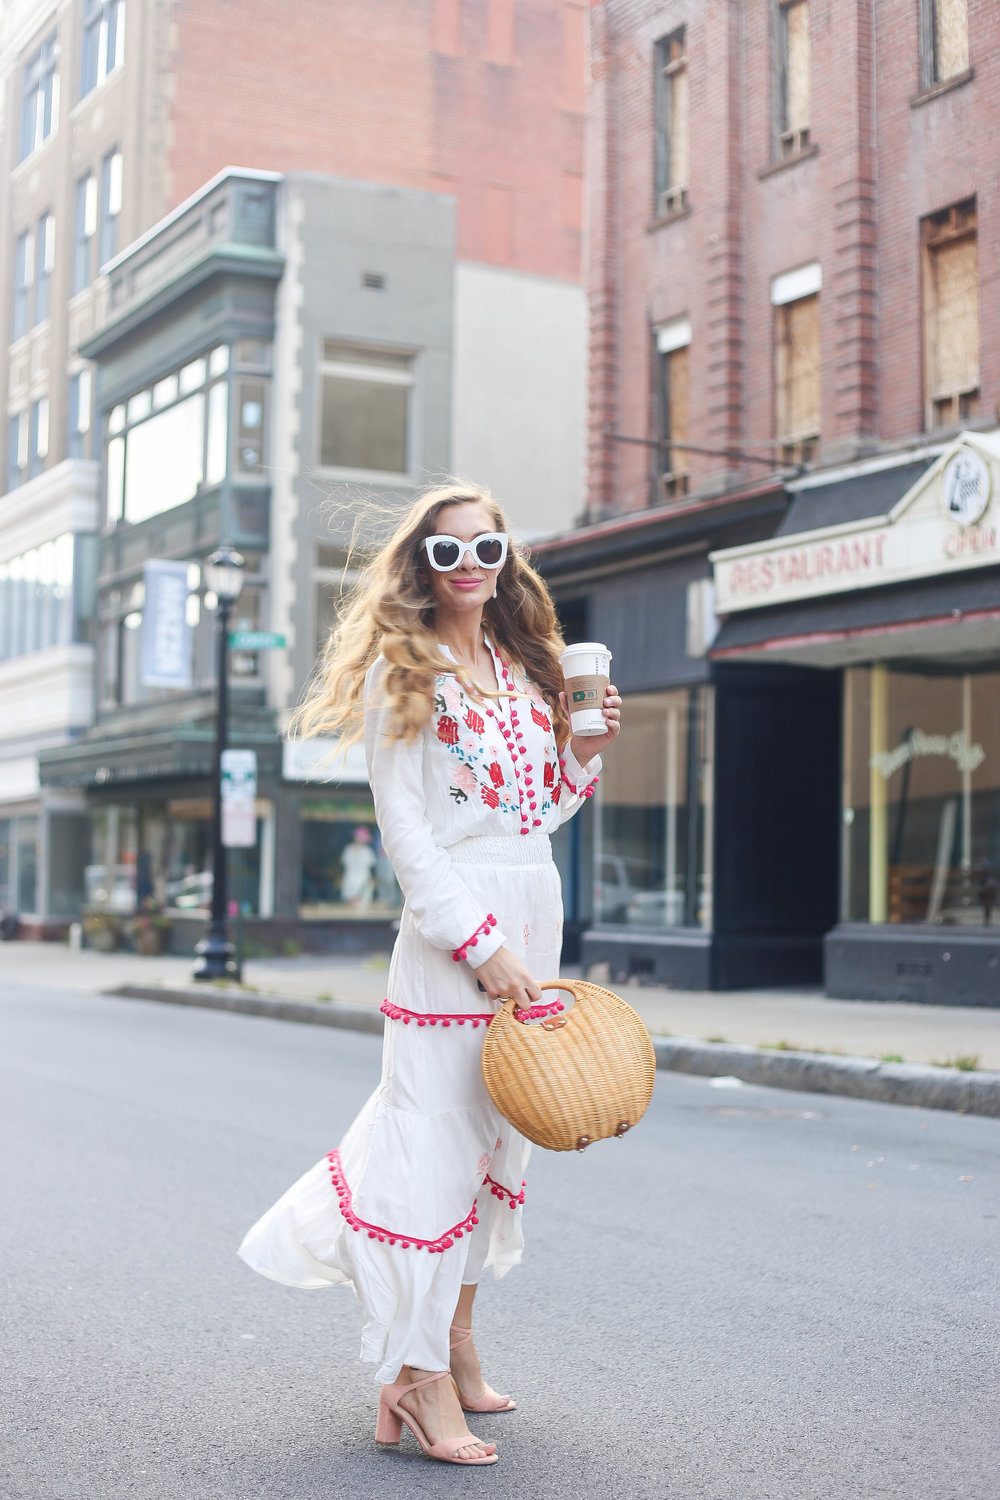 Embroidered floral maxi dress. Pink sandals, white sunglasses. Straw Bag.